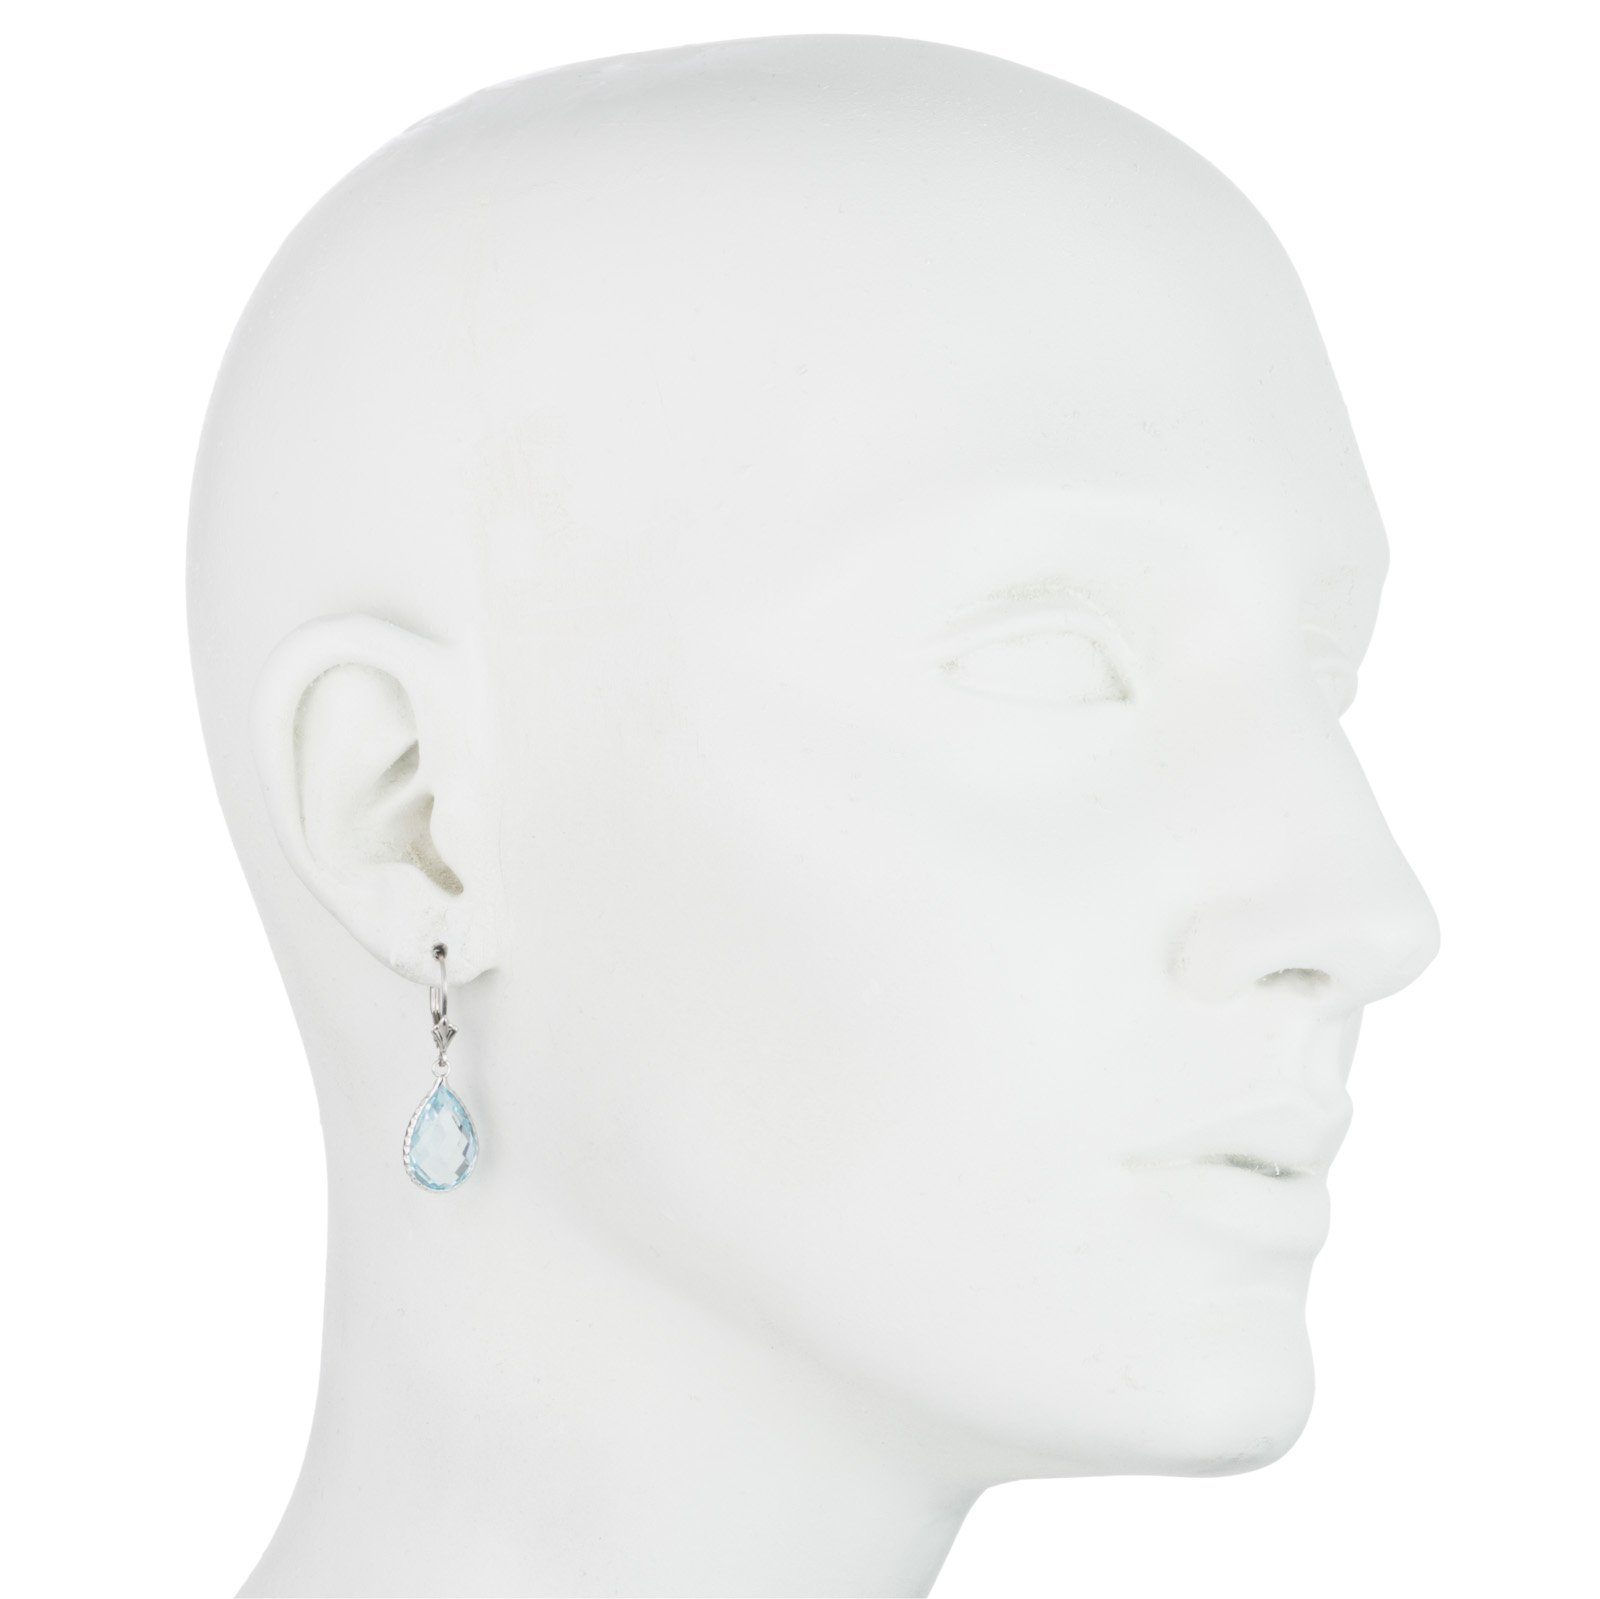 Sterling Silver Genuine Blue topaz Stone Earring, Lever Back Closure, Pear shape, Bezel wired by Glad Gold (Image #1)